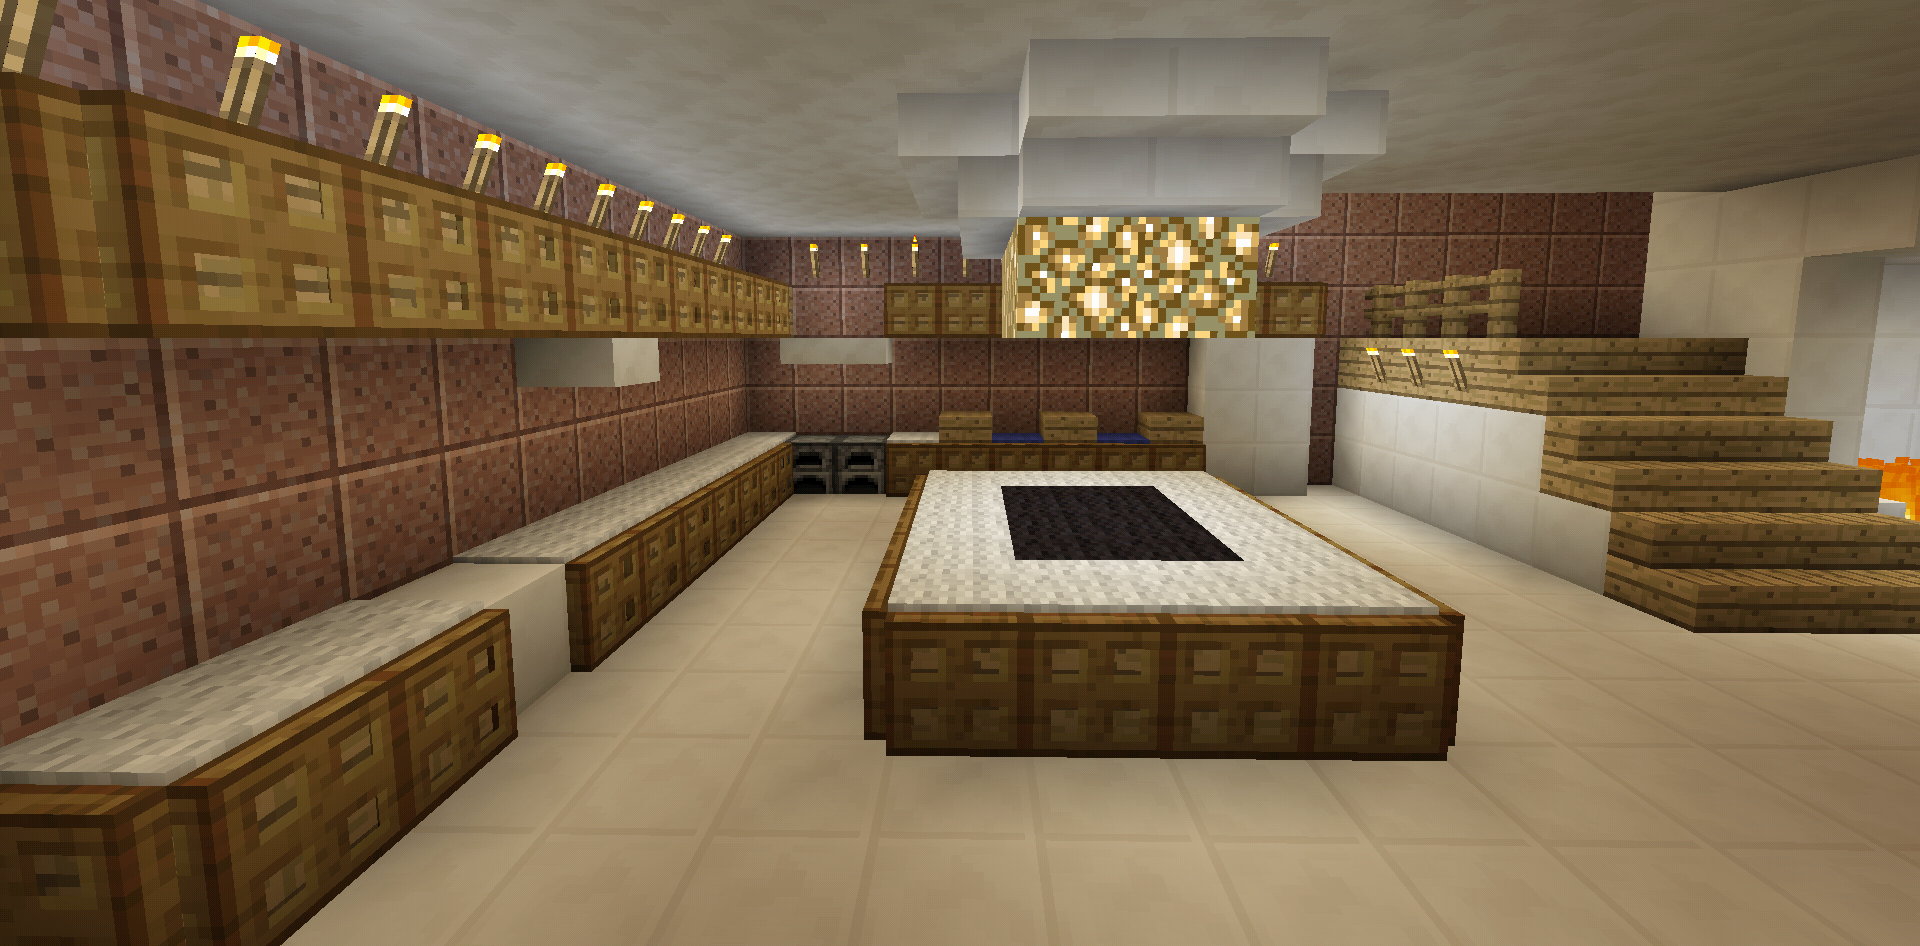 Minecraft kitchen stove sink fridge